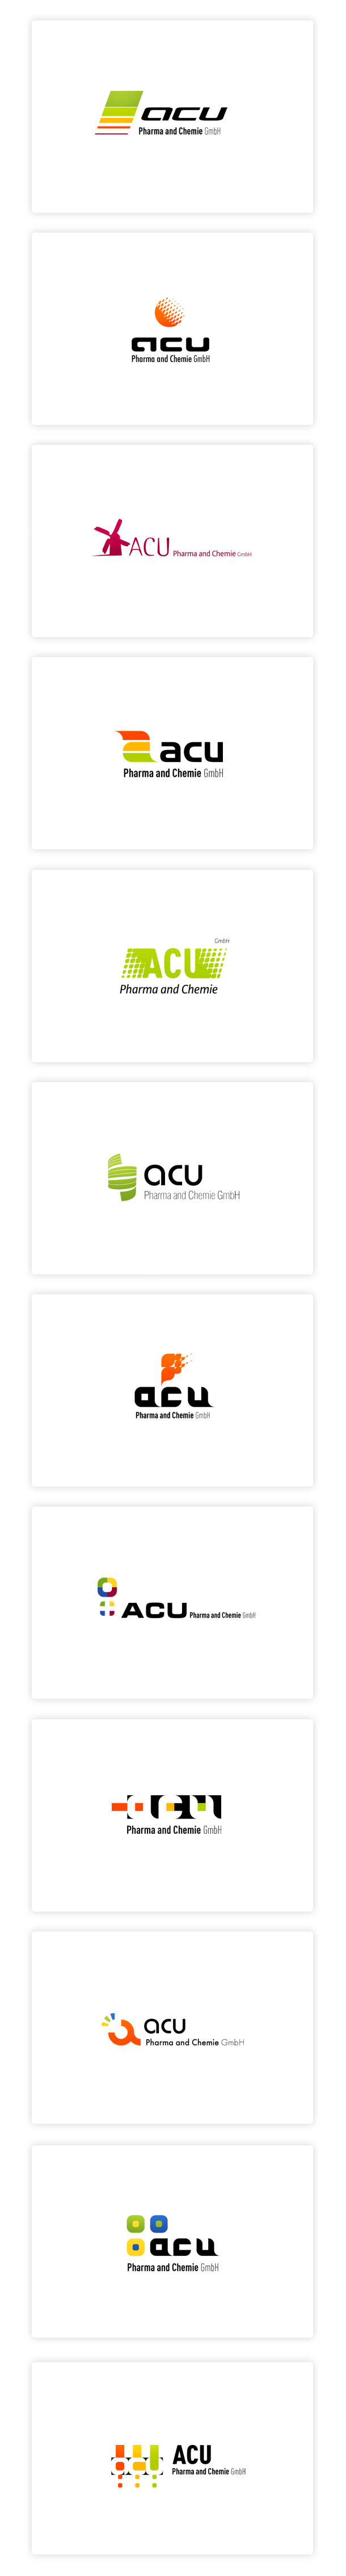 ACU Pharma, logo versions.